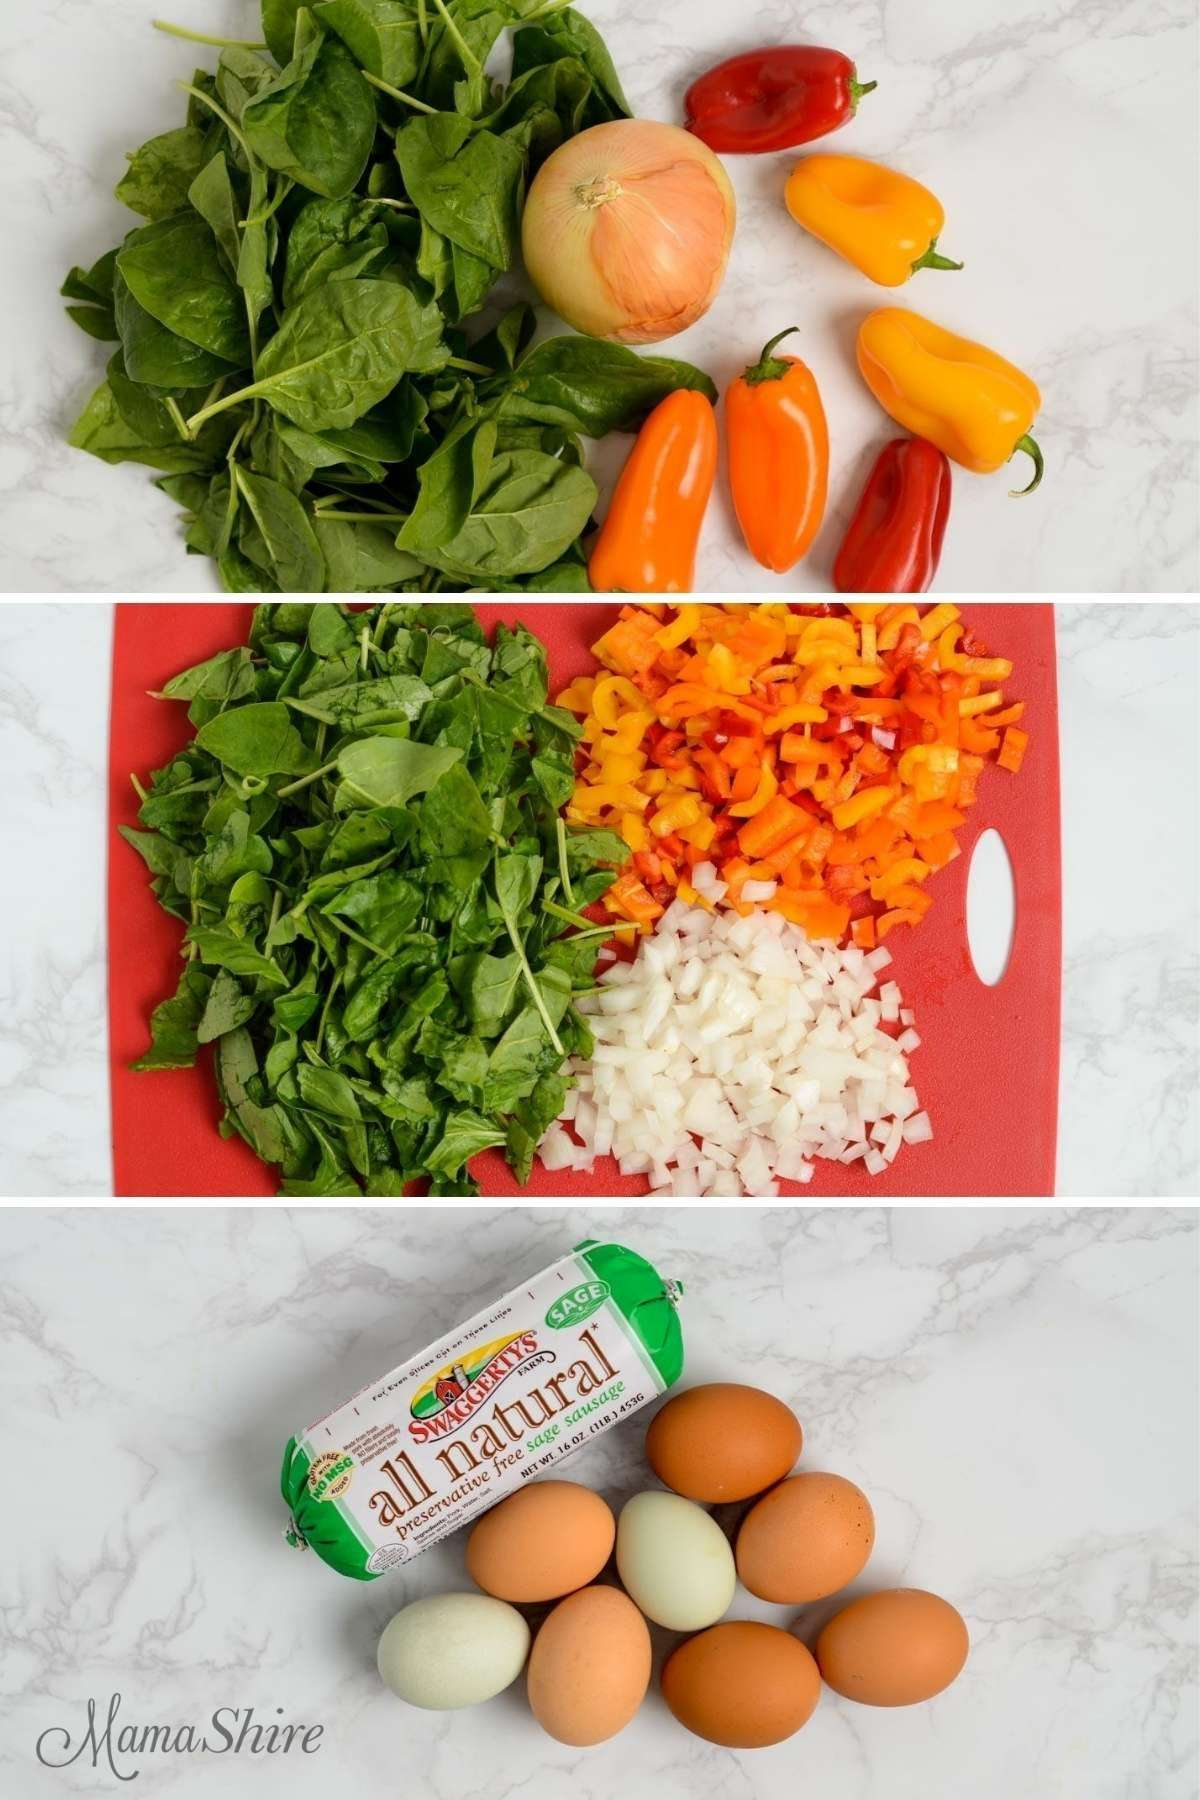 Ingredients for a delicious breakfast -- spinach, peppers, onion, sausage, and eggs.